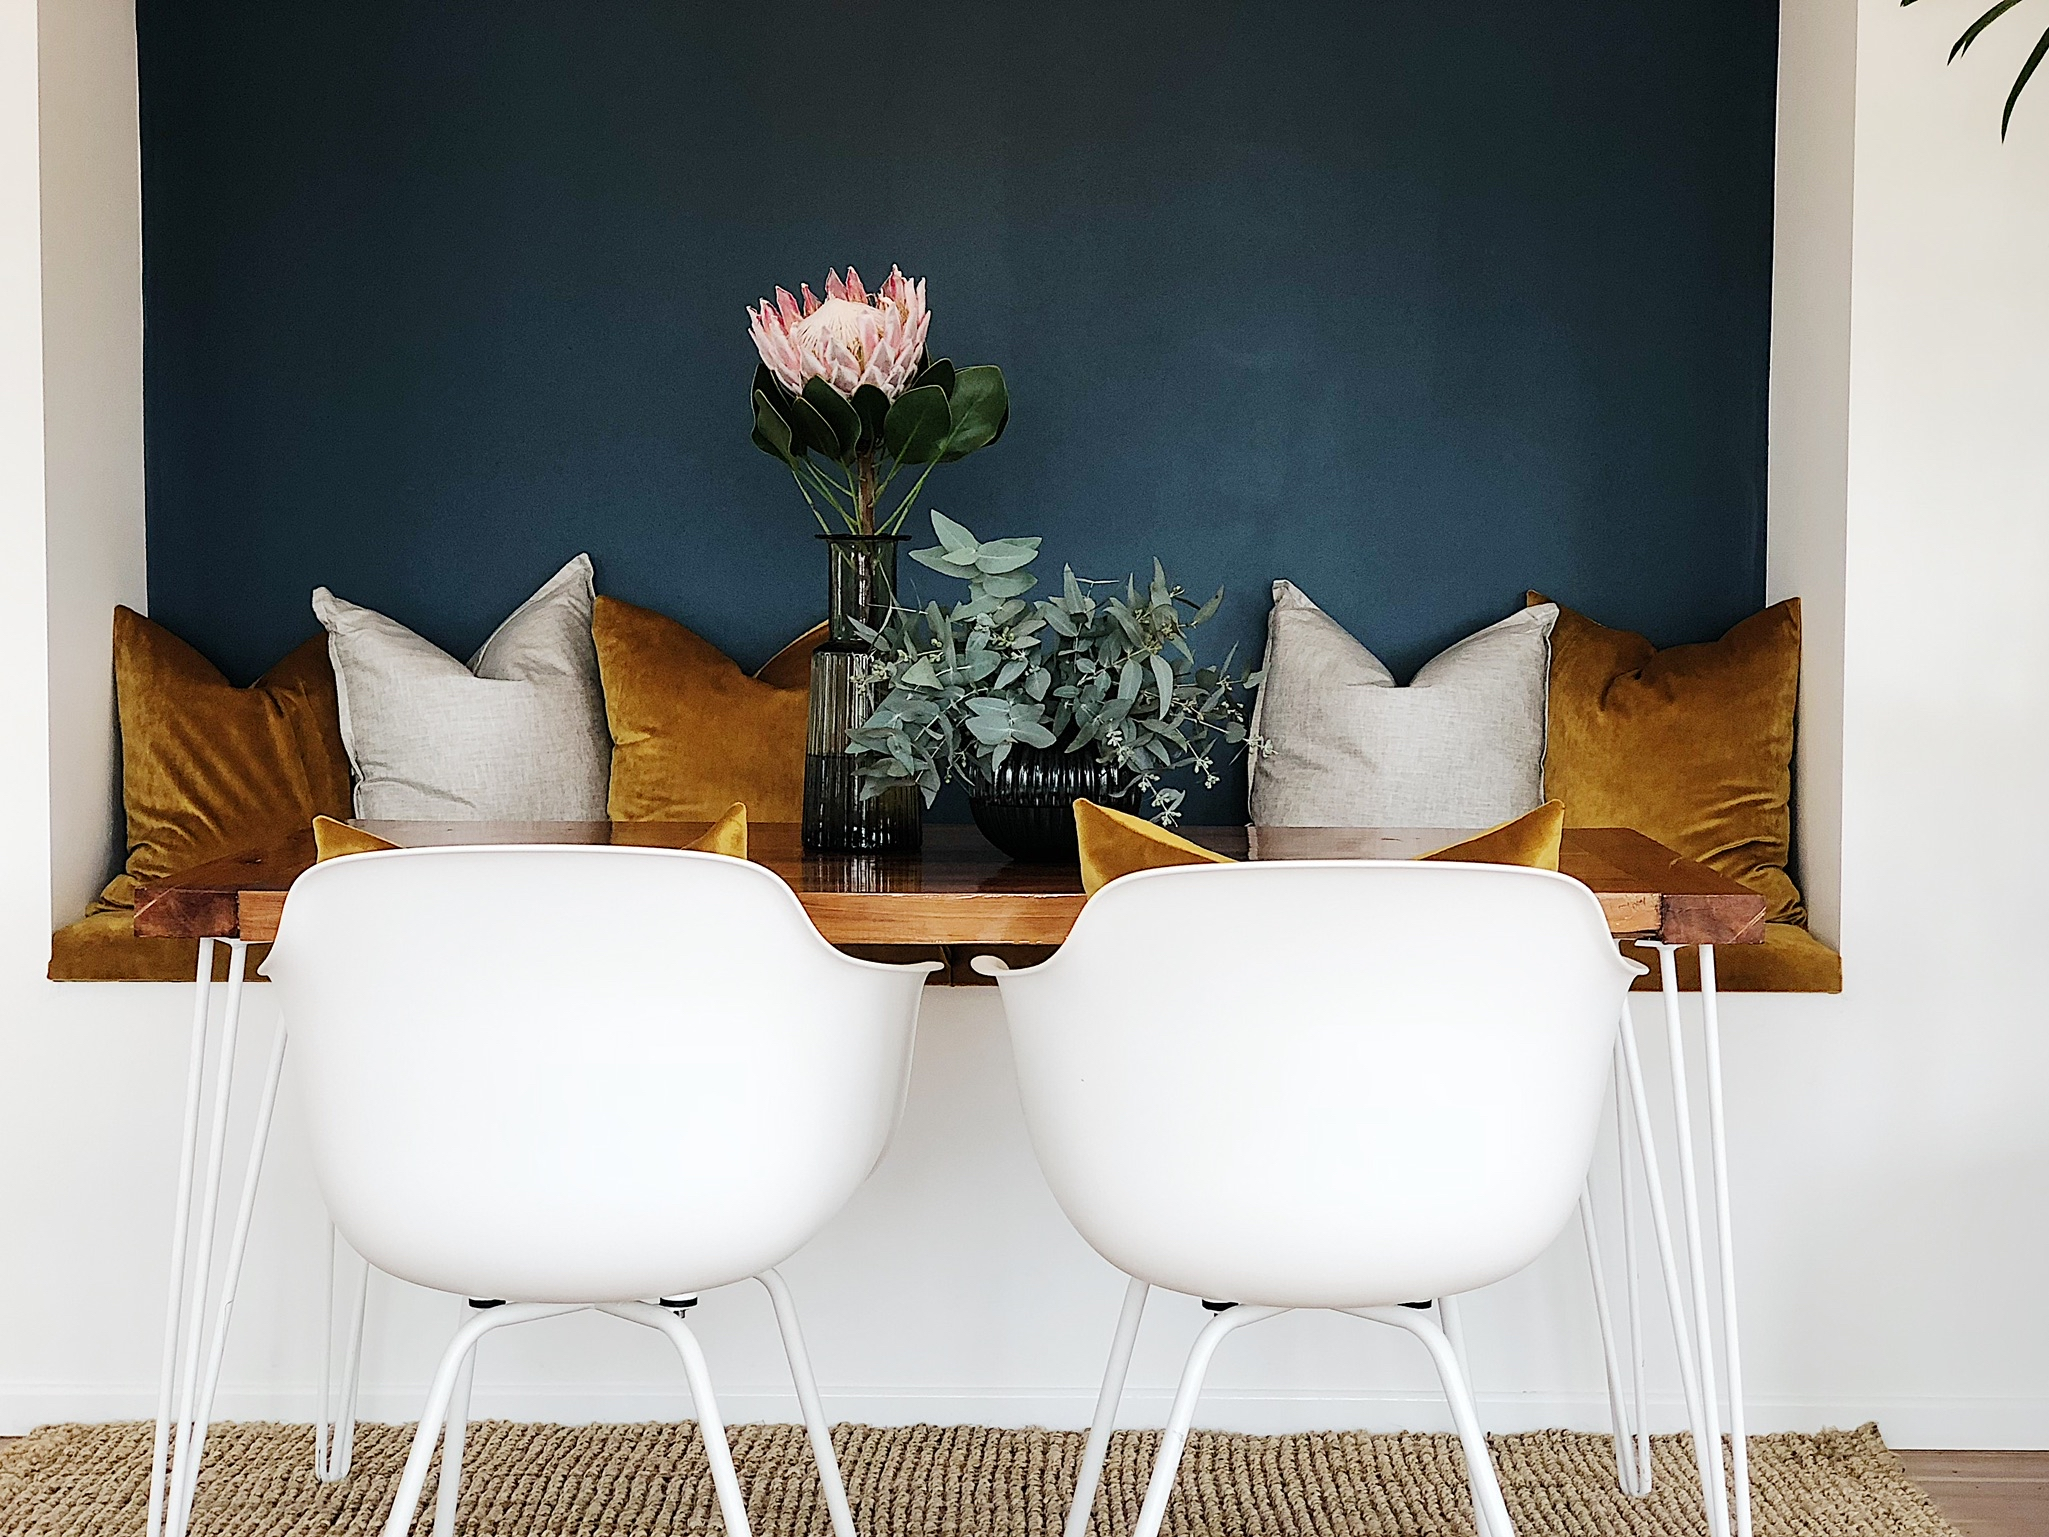 Pearson and Projects Relocatable Reno Dining Project Table Chair Swab Seat Cushions Vase Gold Mustard.jpg